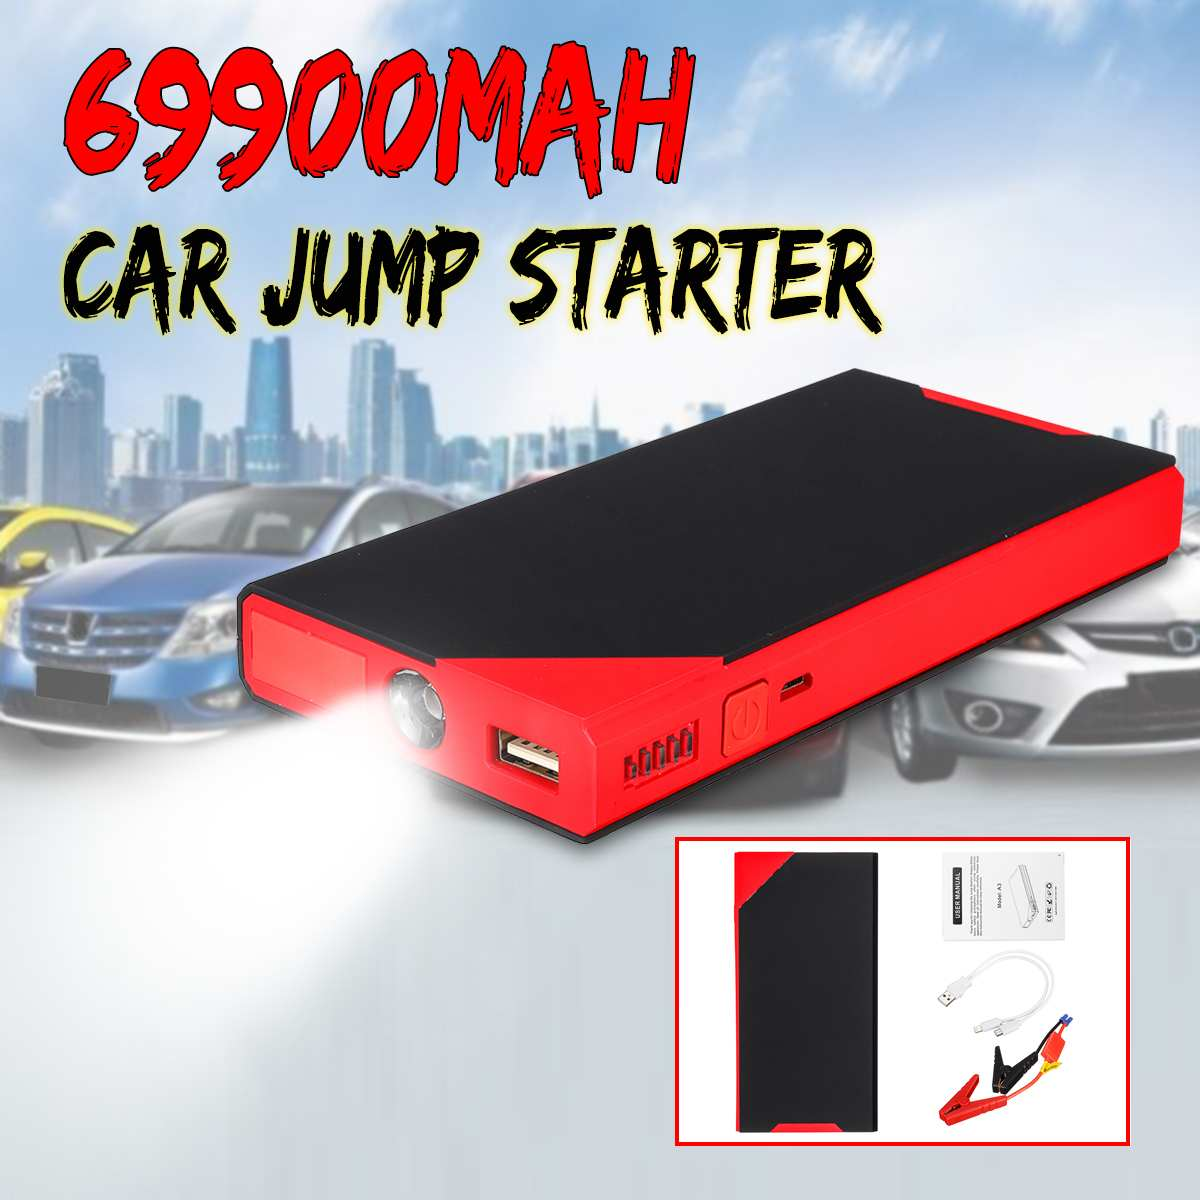 69900mAh Car Jump Starter Power Bank 12V USB LED Portable Multifunction Emergency Car Battery Booster Jumpstarter